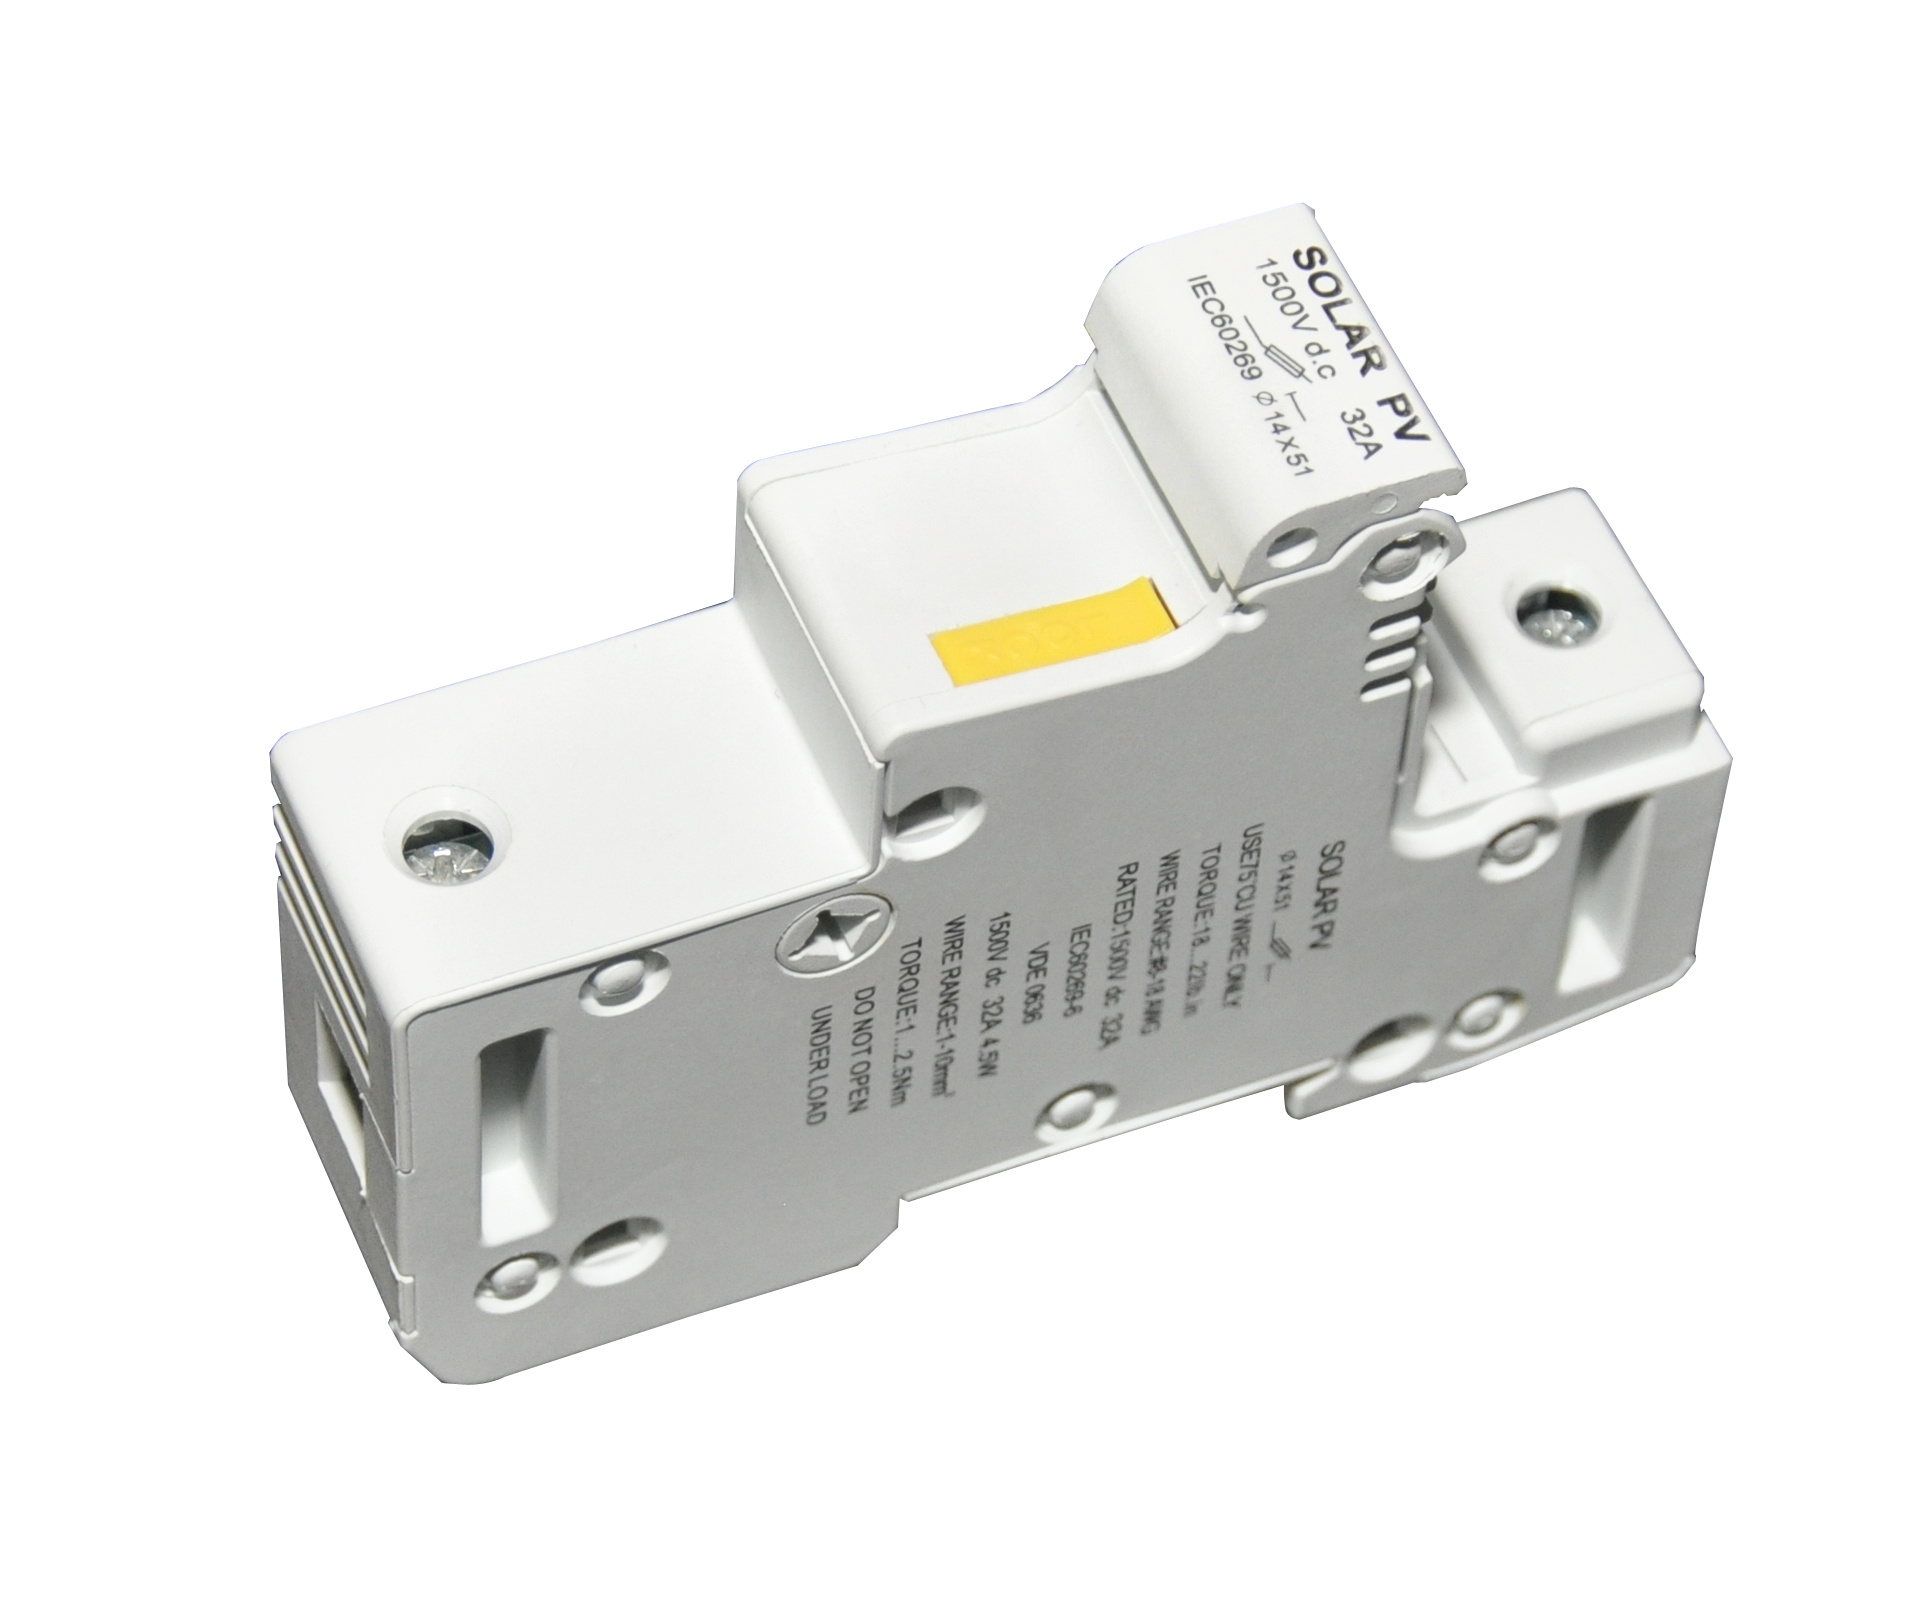 hight resolution of 1500vdc fuse holder dc fuse block for pv combiner box parts